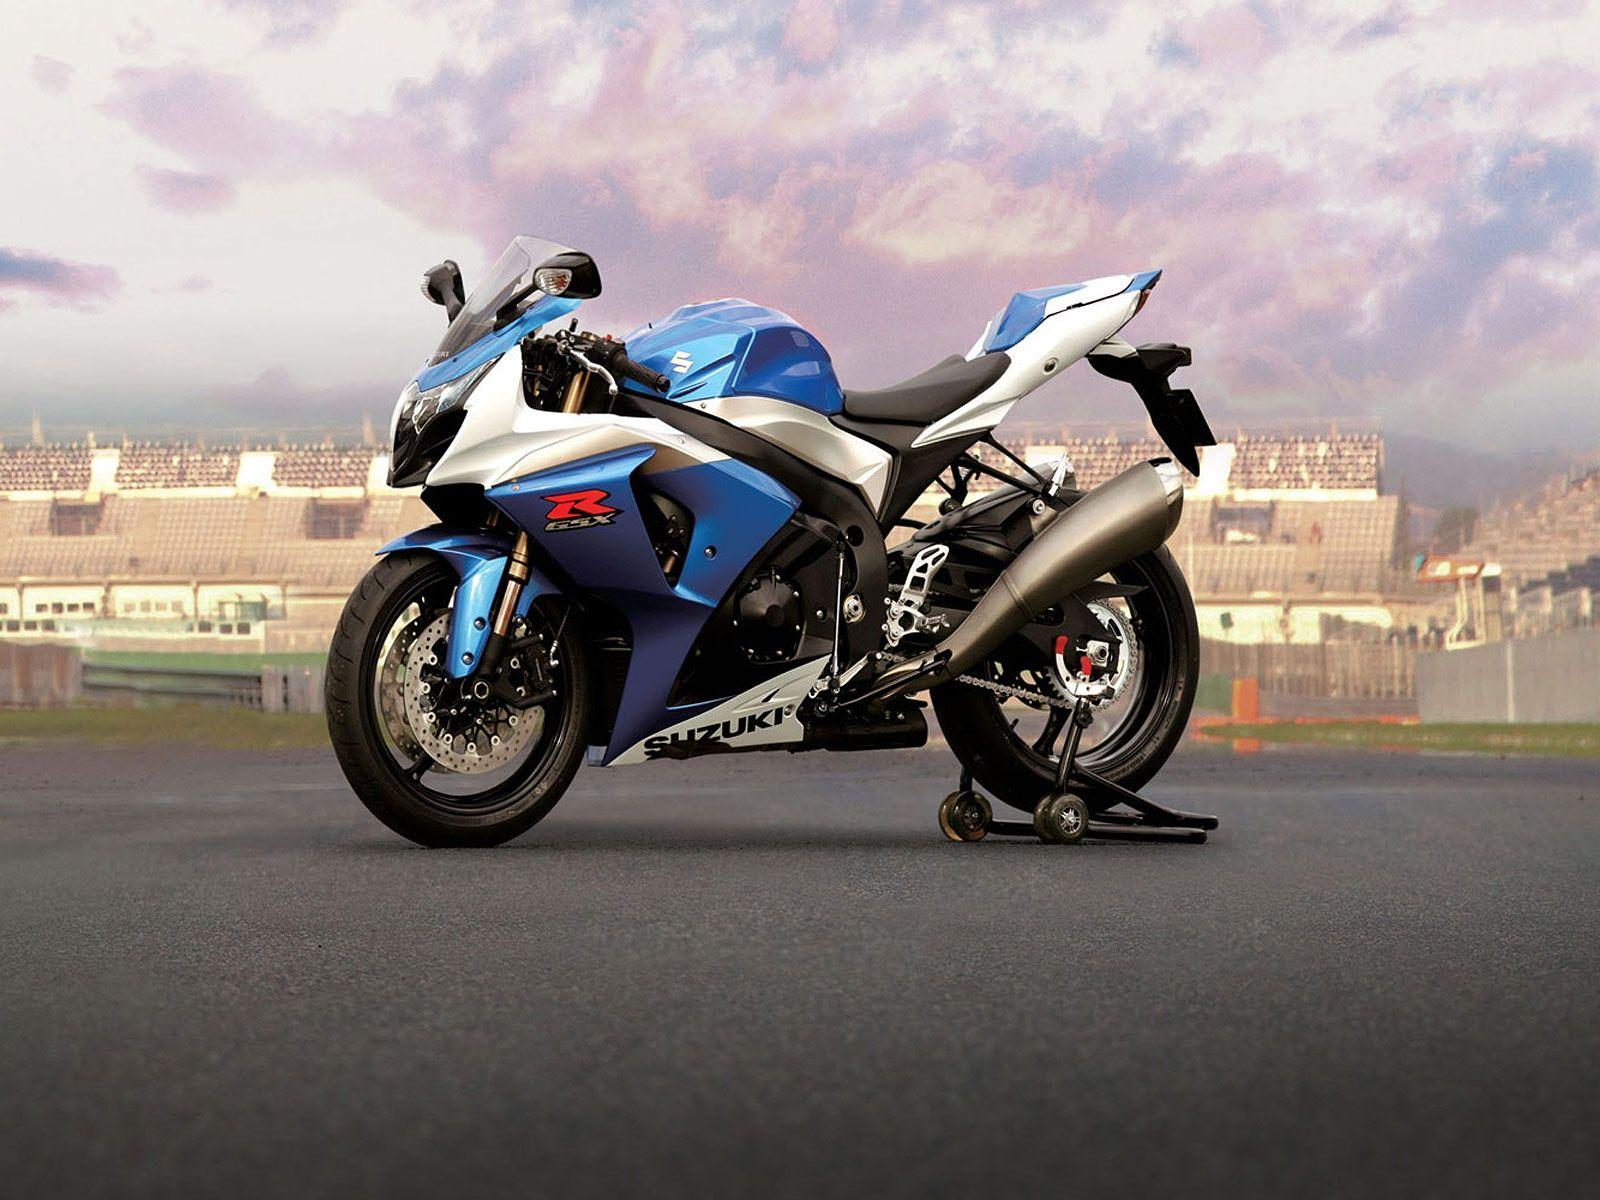 Suzuki Gsxr 1000 Wallpapers HD | Full HD Pictures